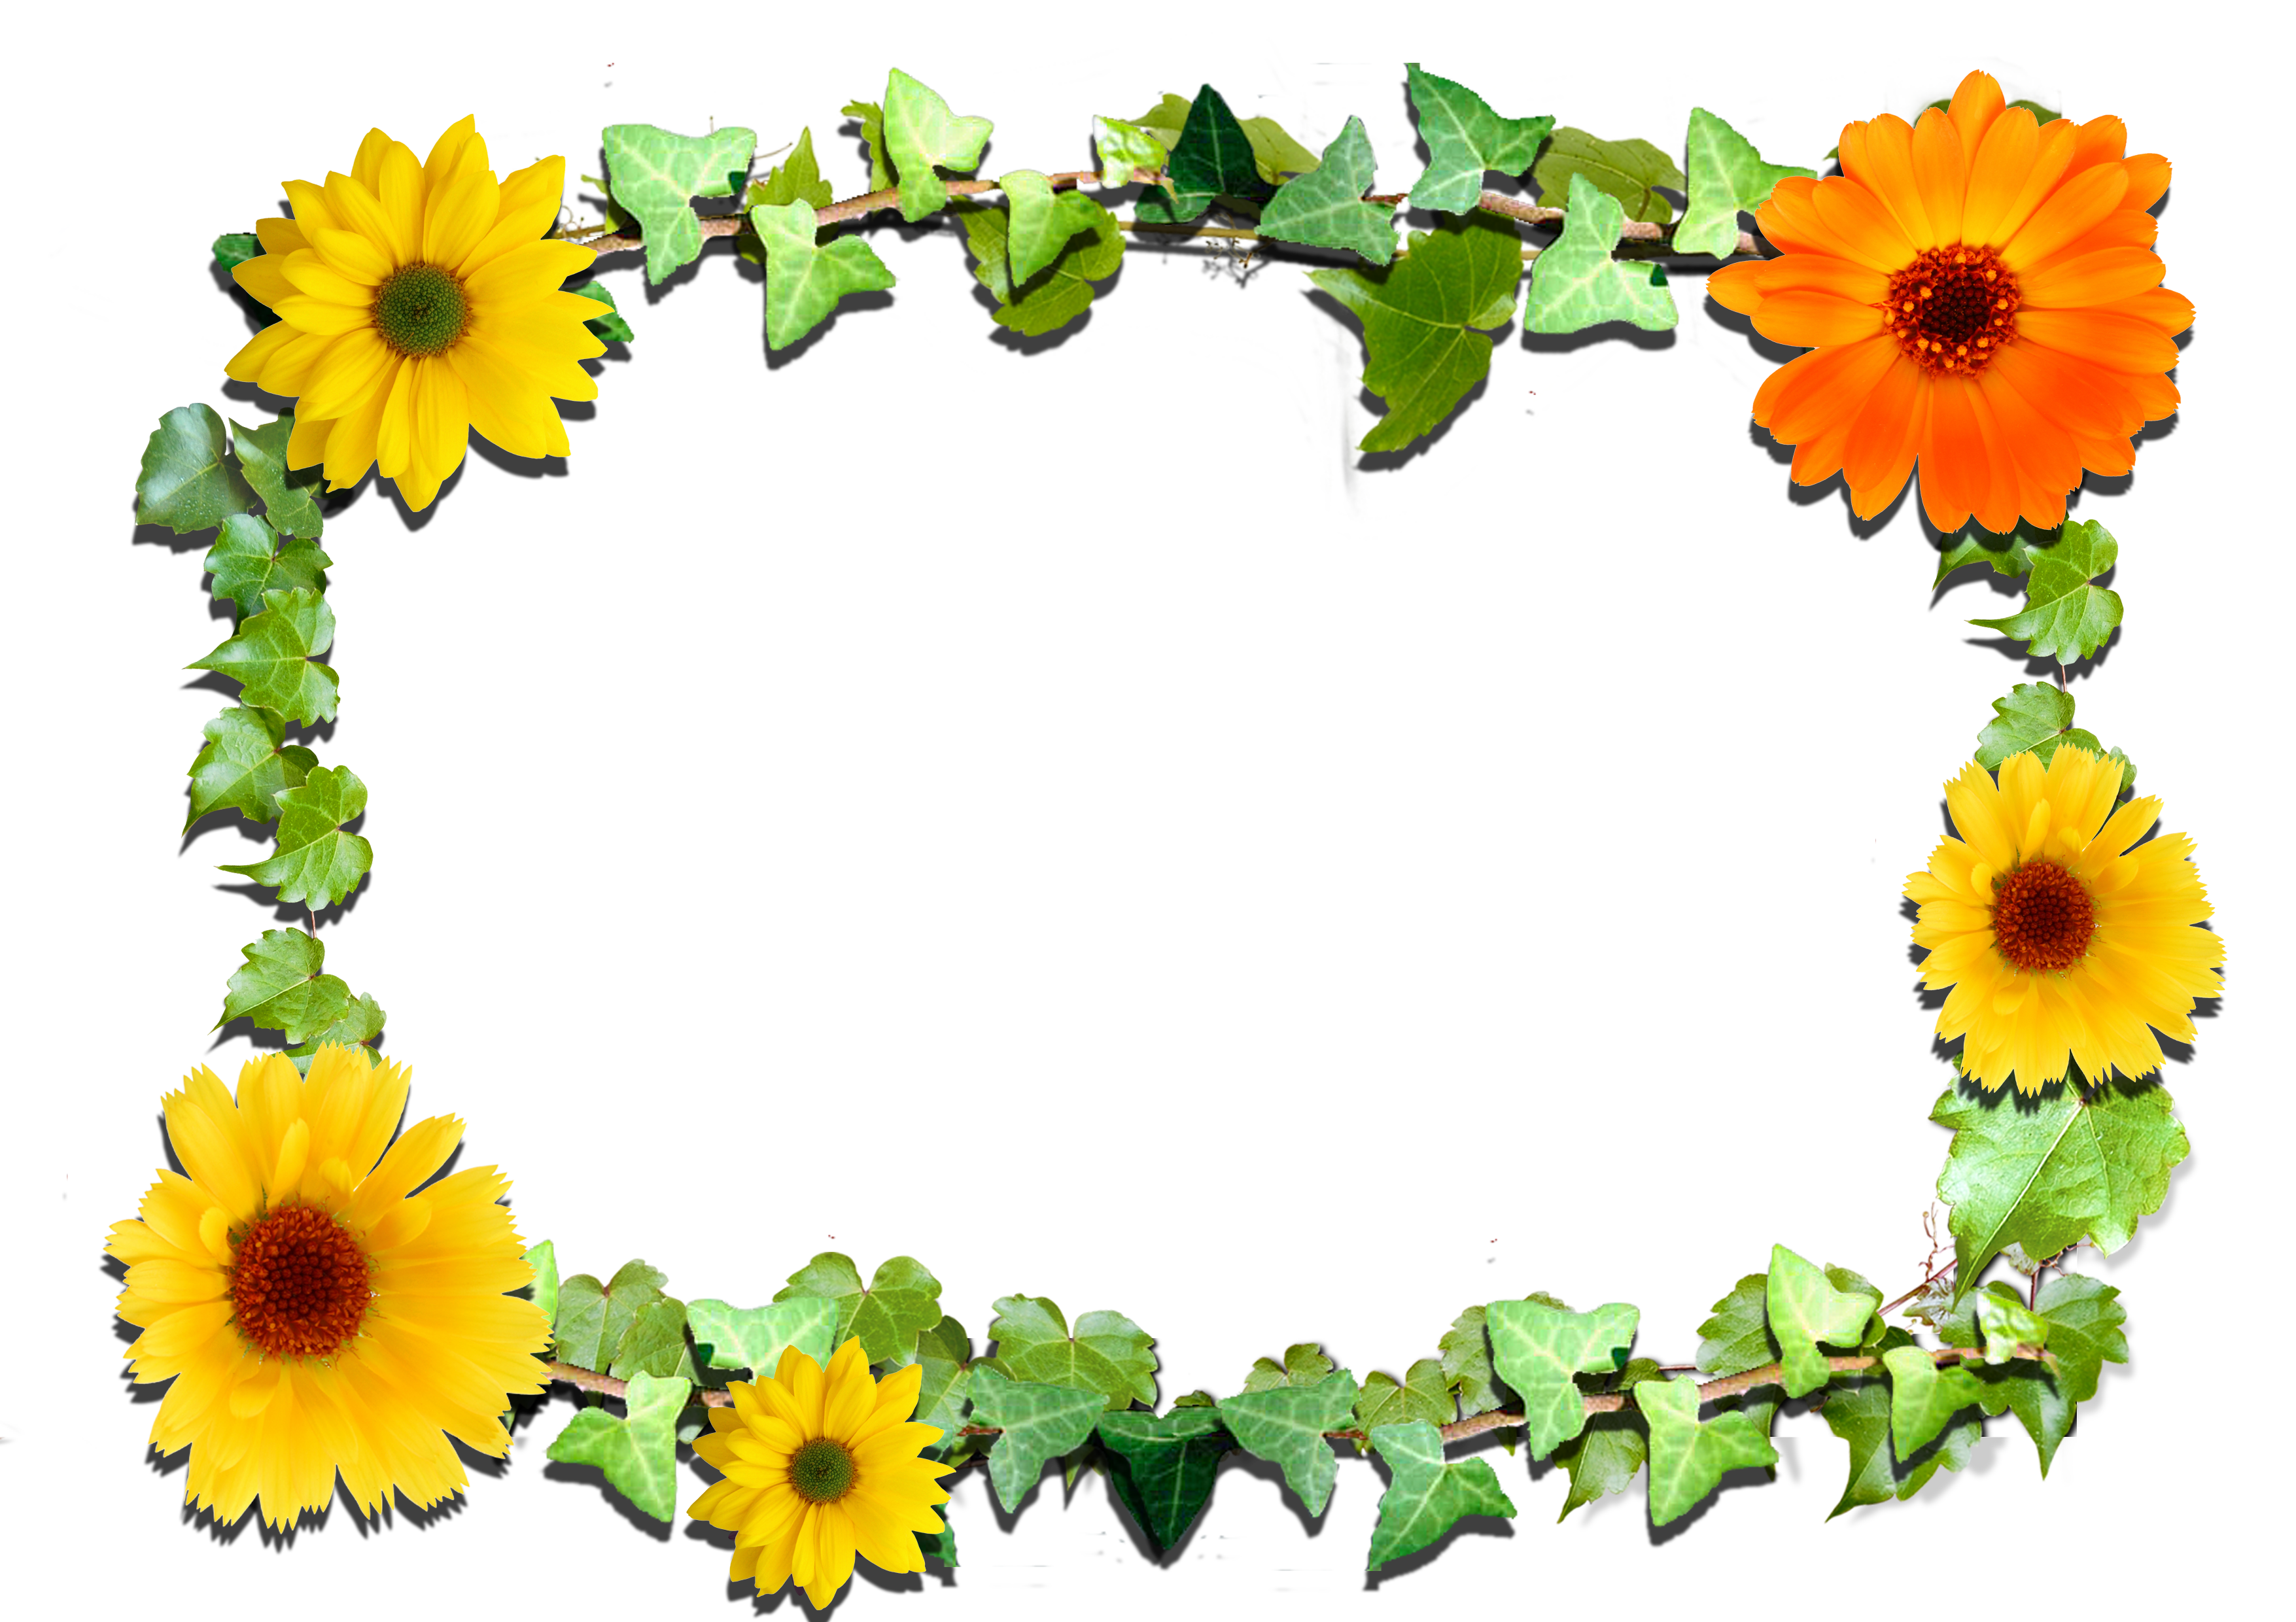 Flower font high definition png. Flowers frame gallery yopriceville